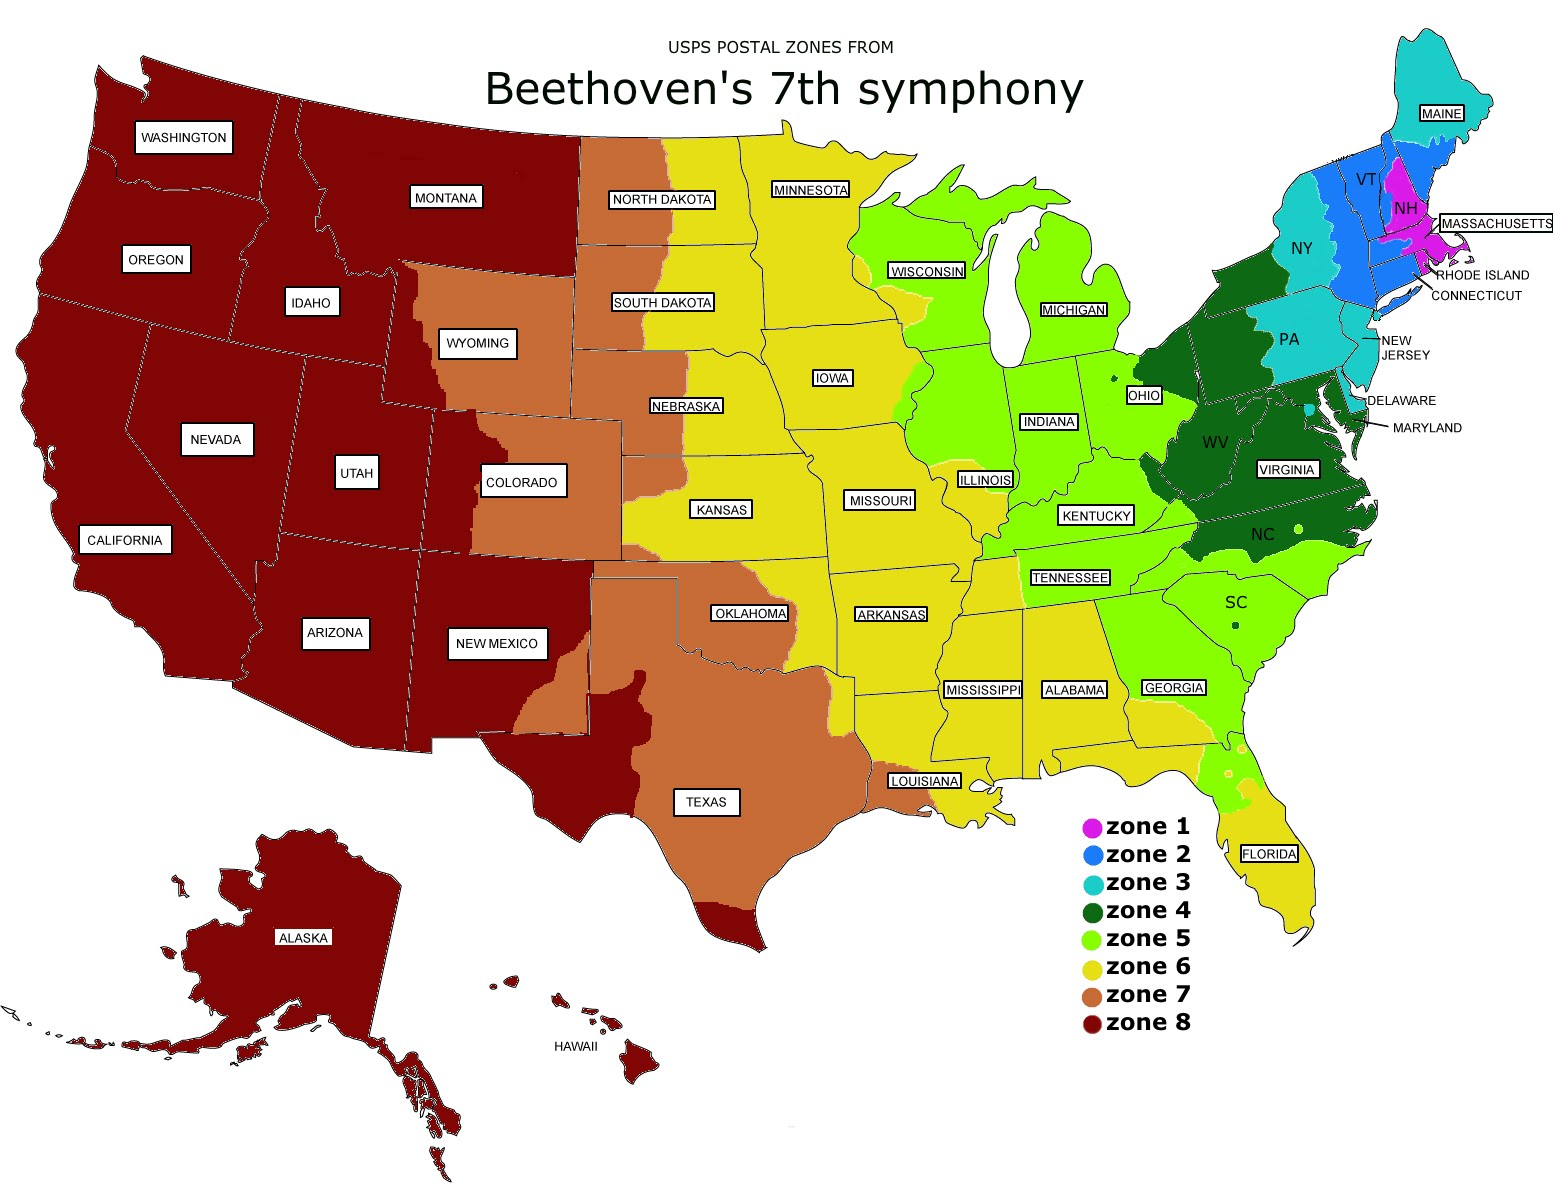 Usps Priority Mail Map Postal ZONES map   Beethoven's 7th symphony